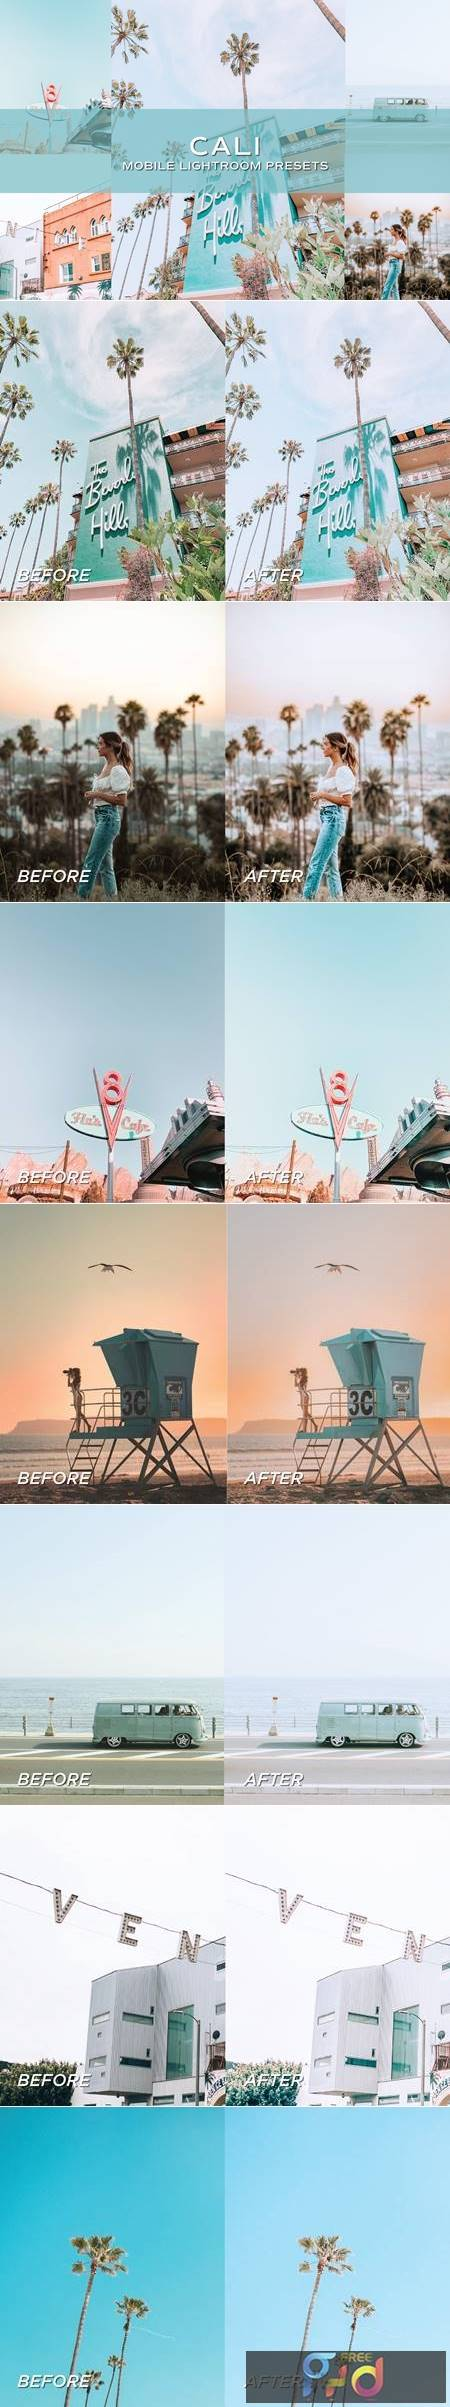 5 Cali Blogger Lightroom Presets 5698888 1